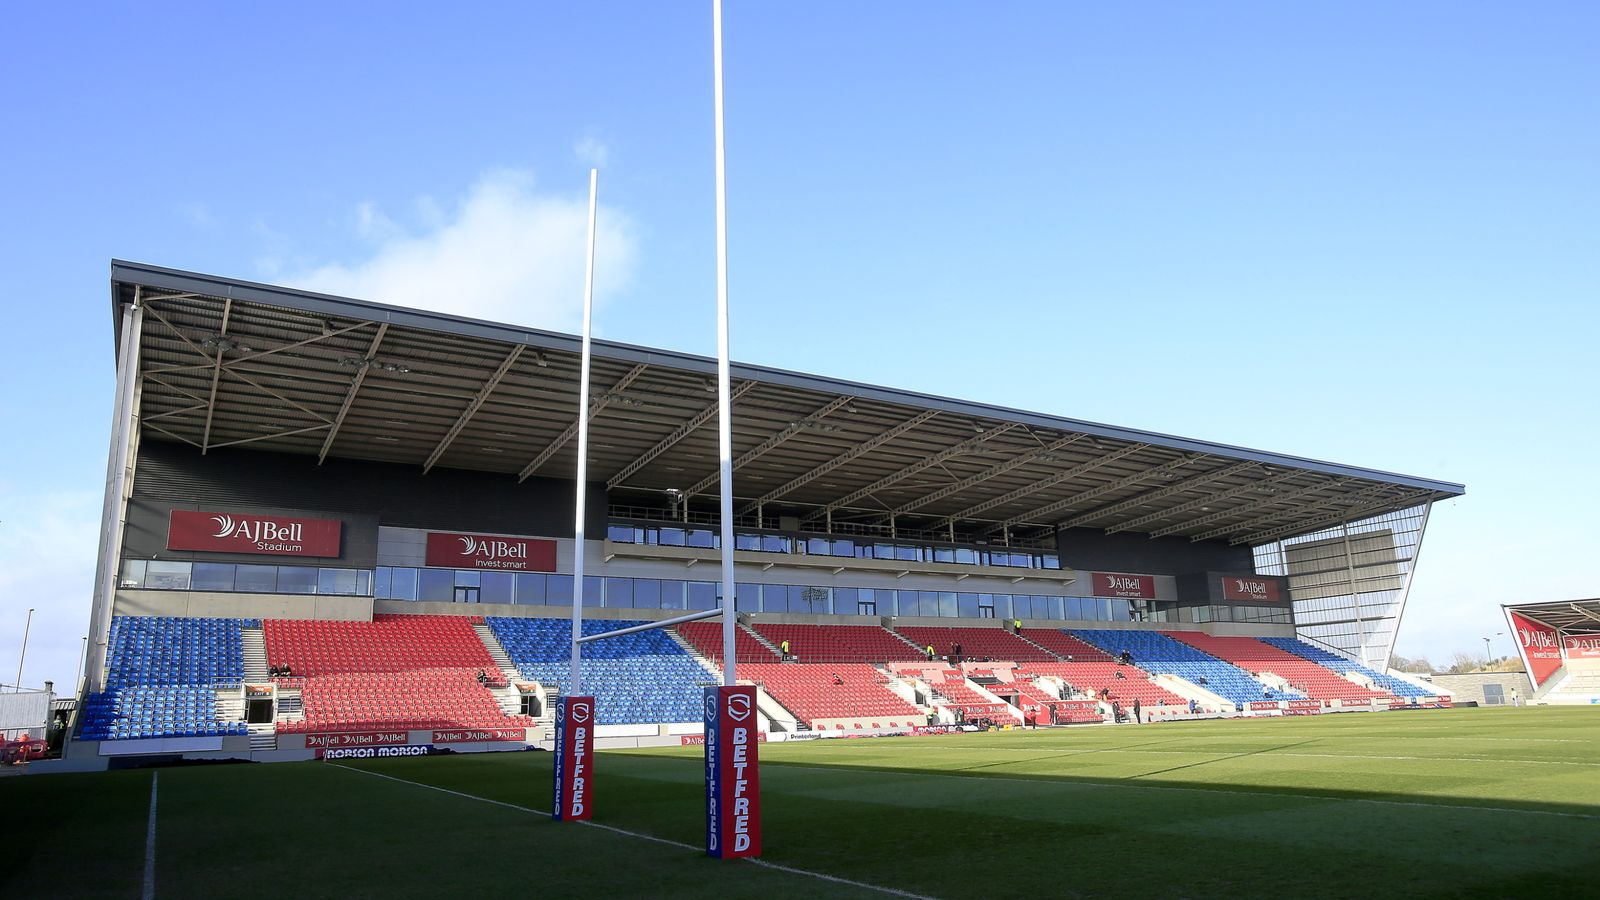 Sale Sharks confirm plans for new hometown stadium